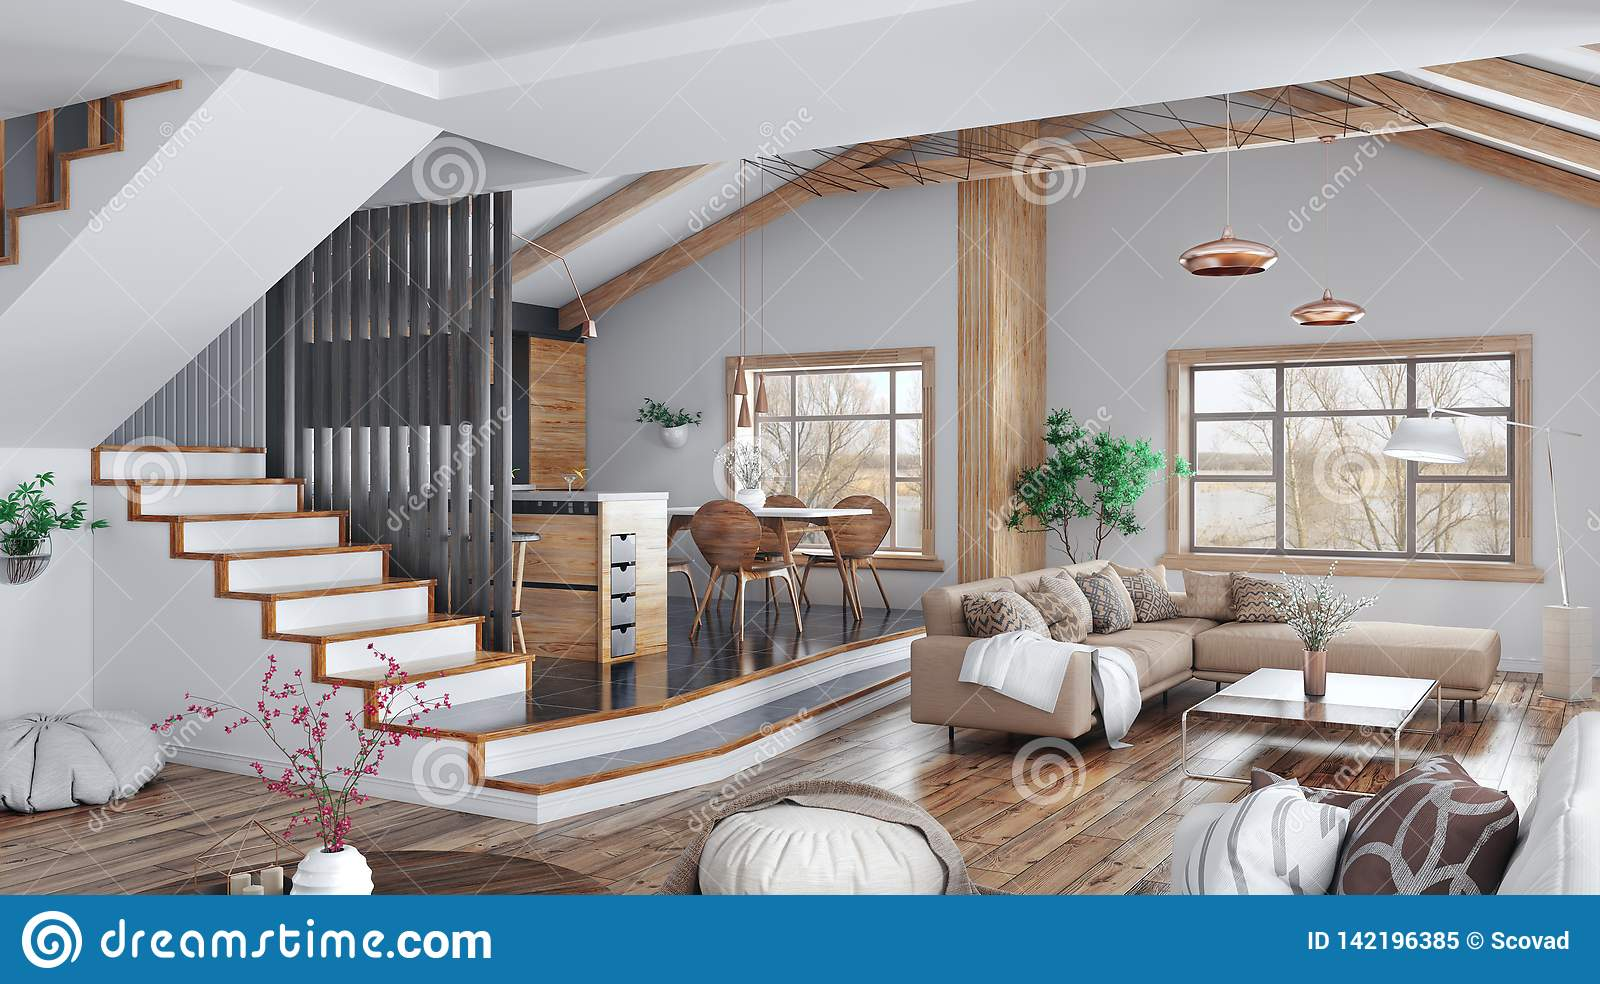 Modern Interior Design Of House, Kitchen, Living Room With